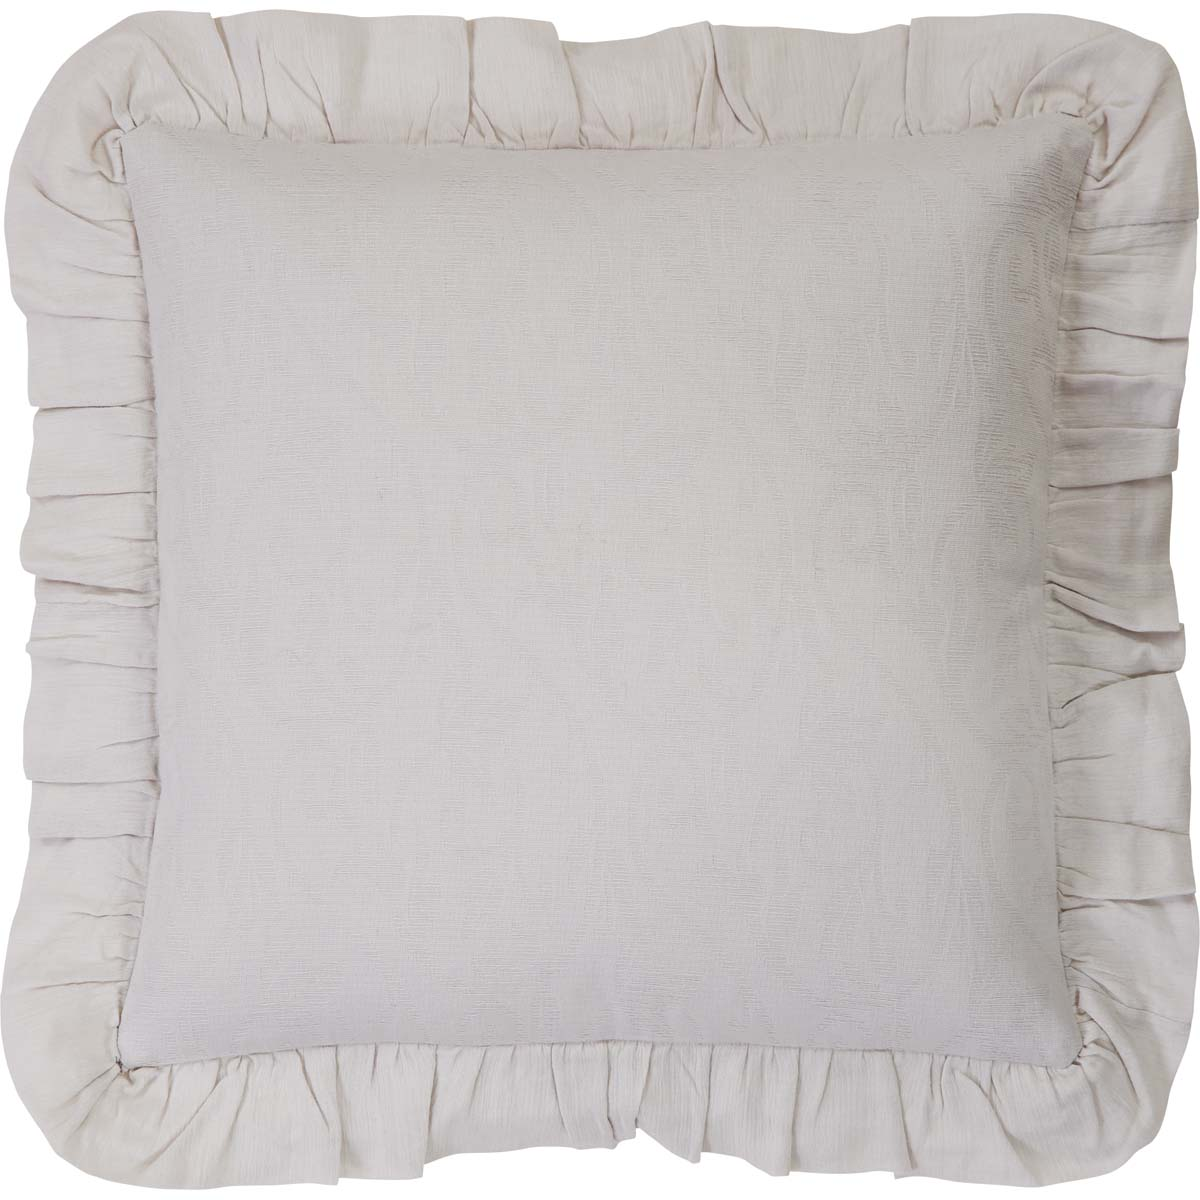 Corrine Ruffle Pillow Cover 18x18